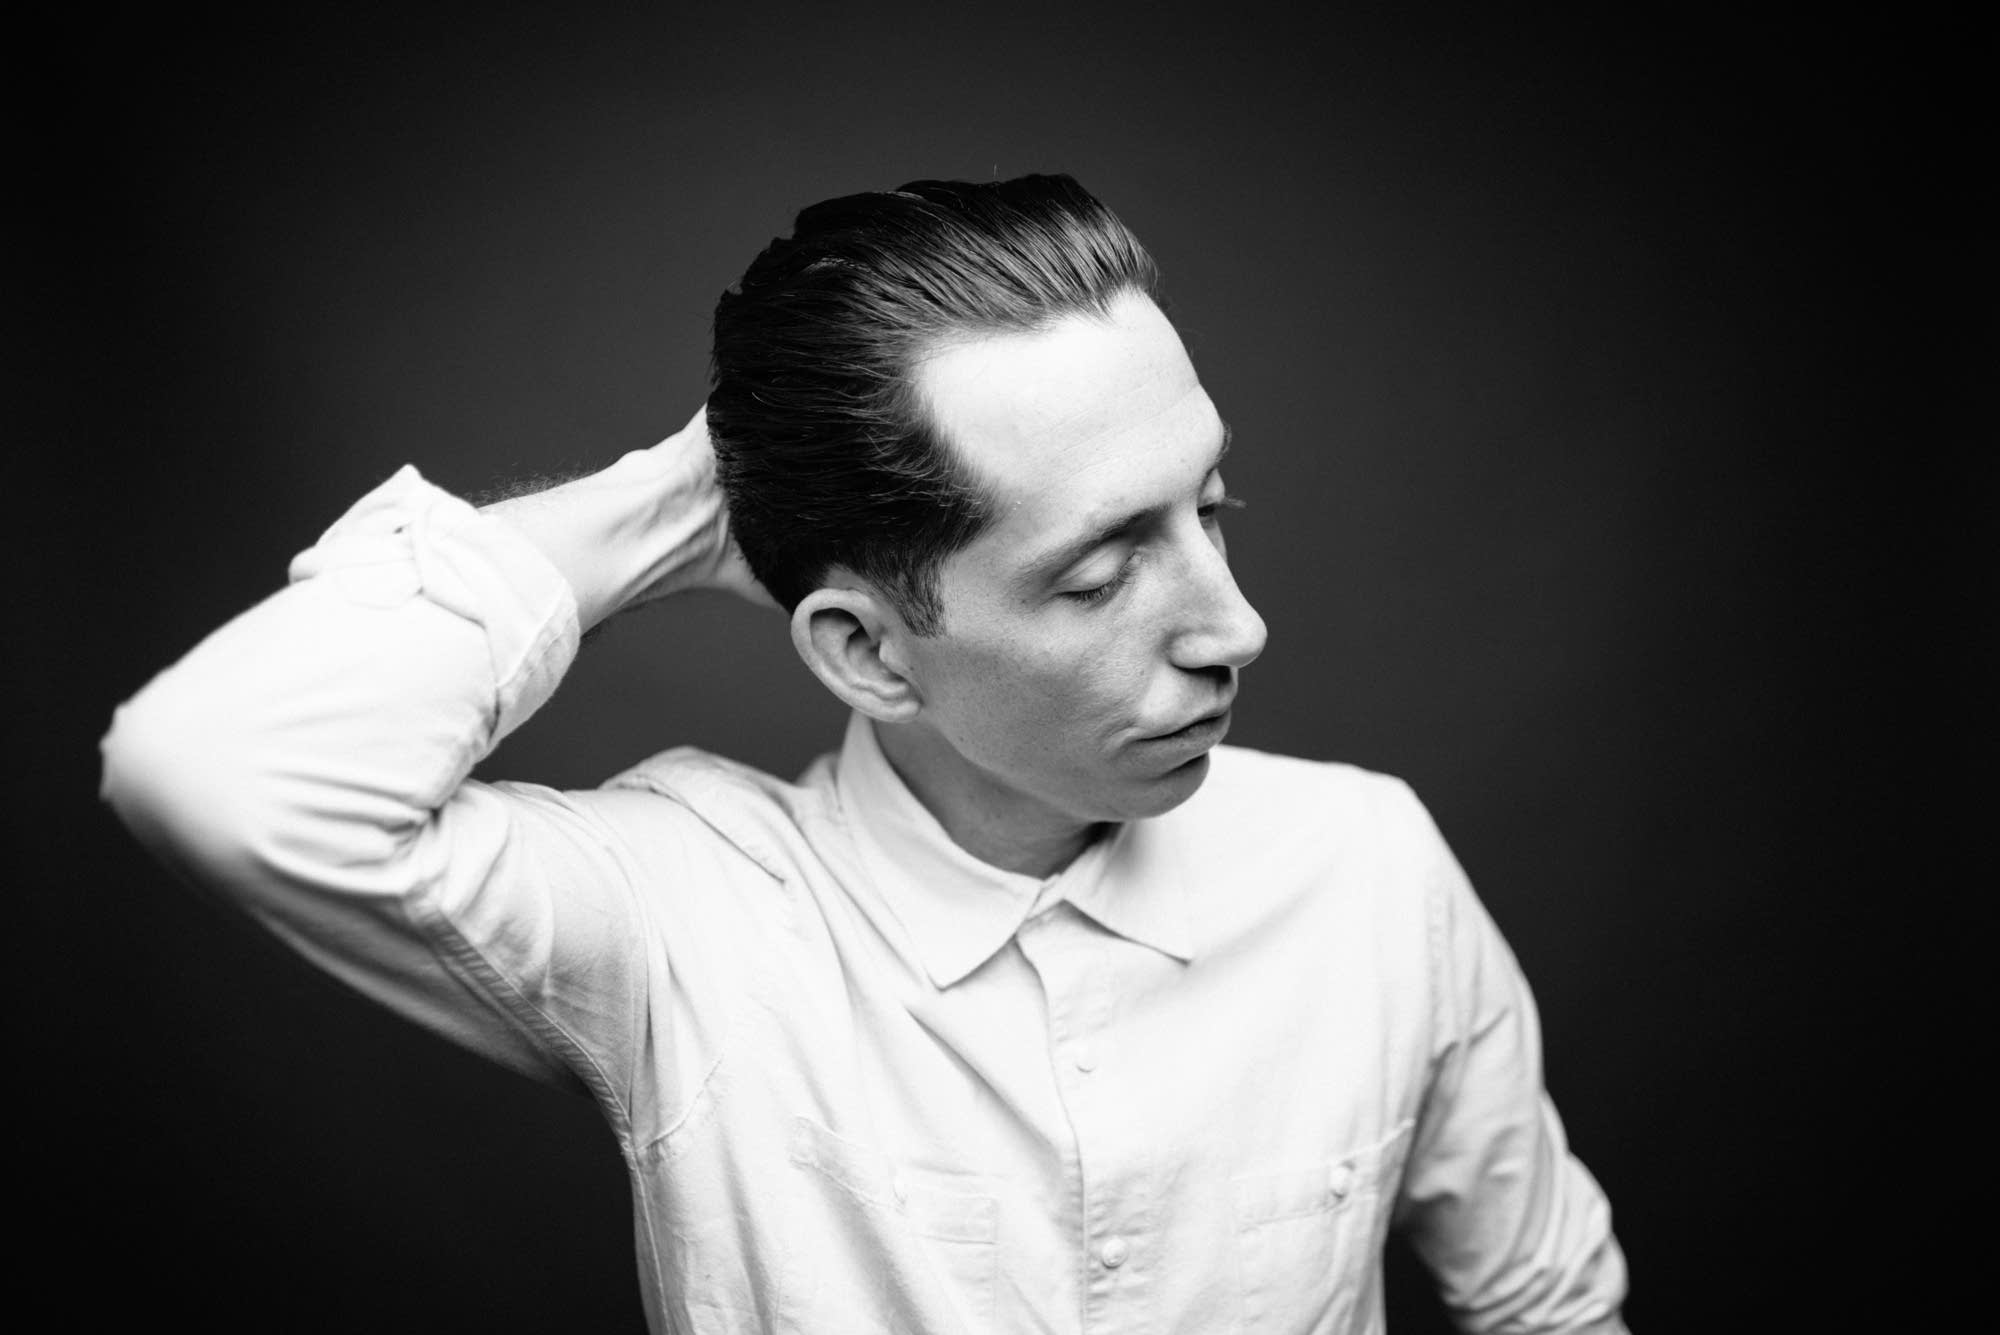 Pokey LaFarge portrait at The Current